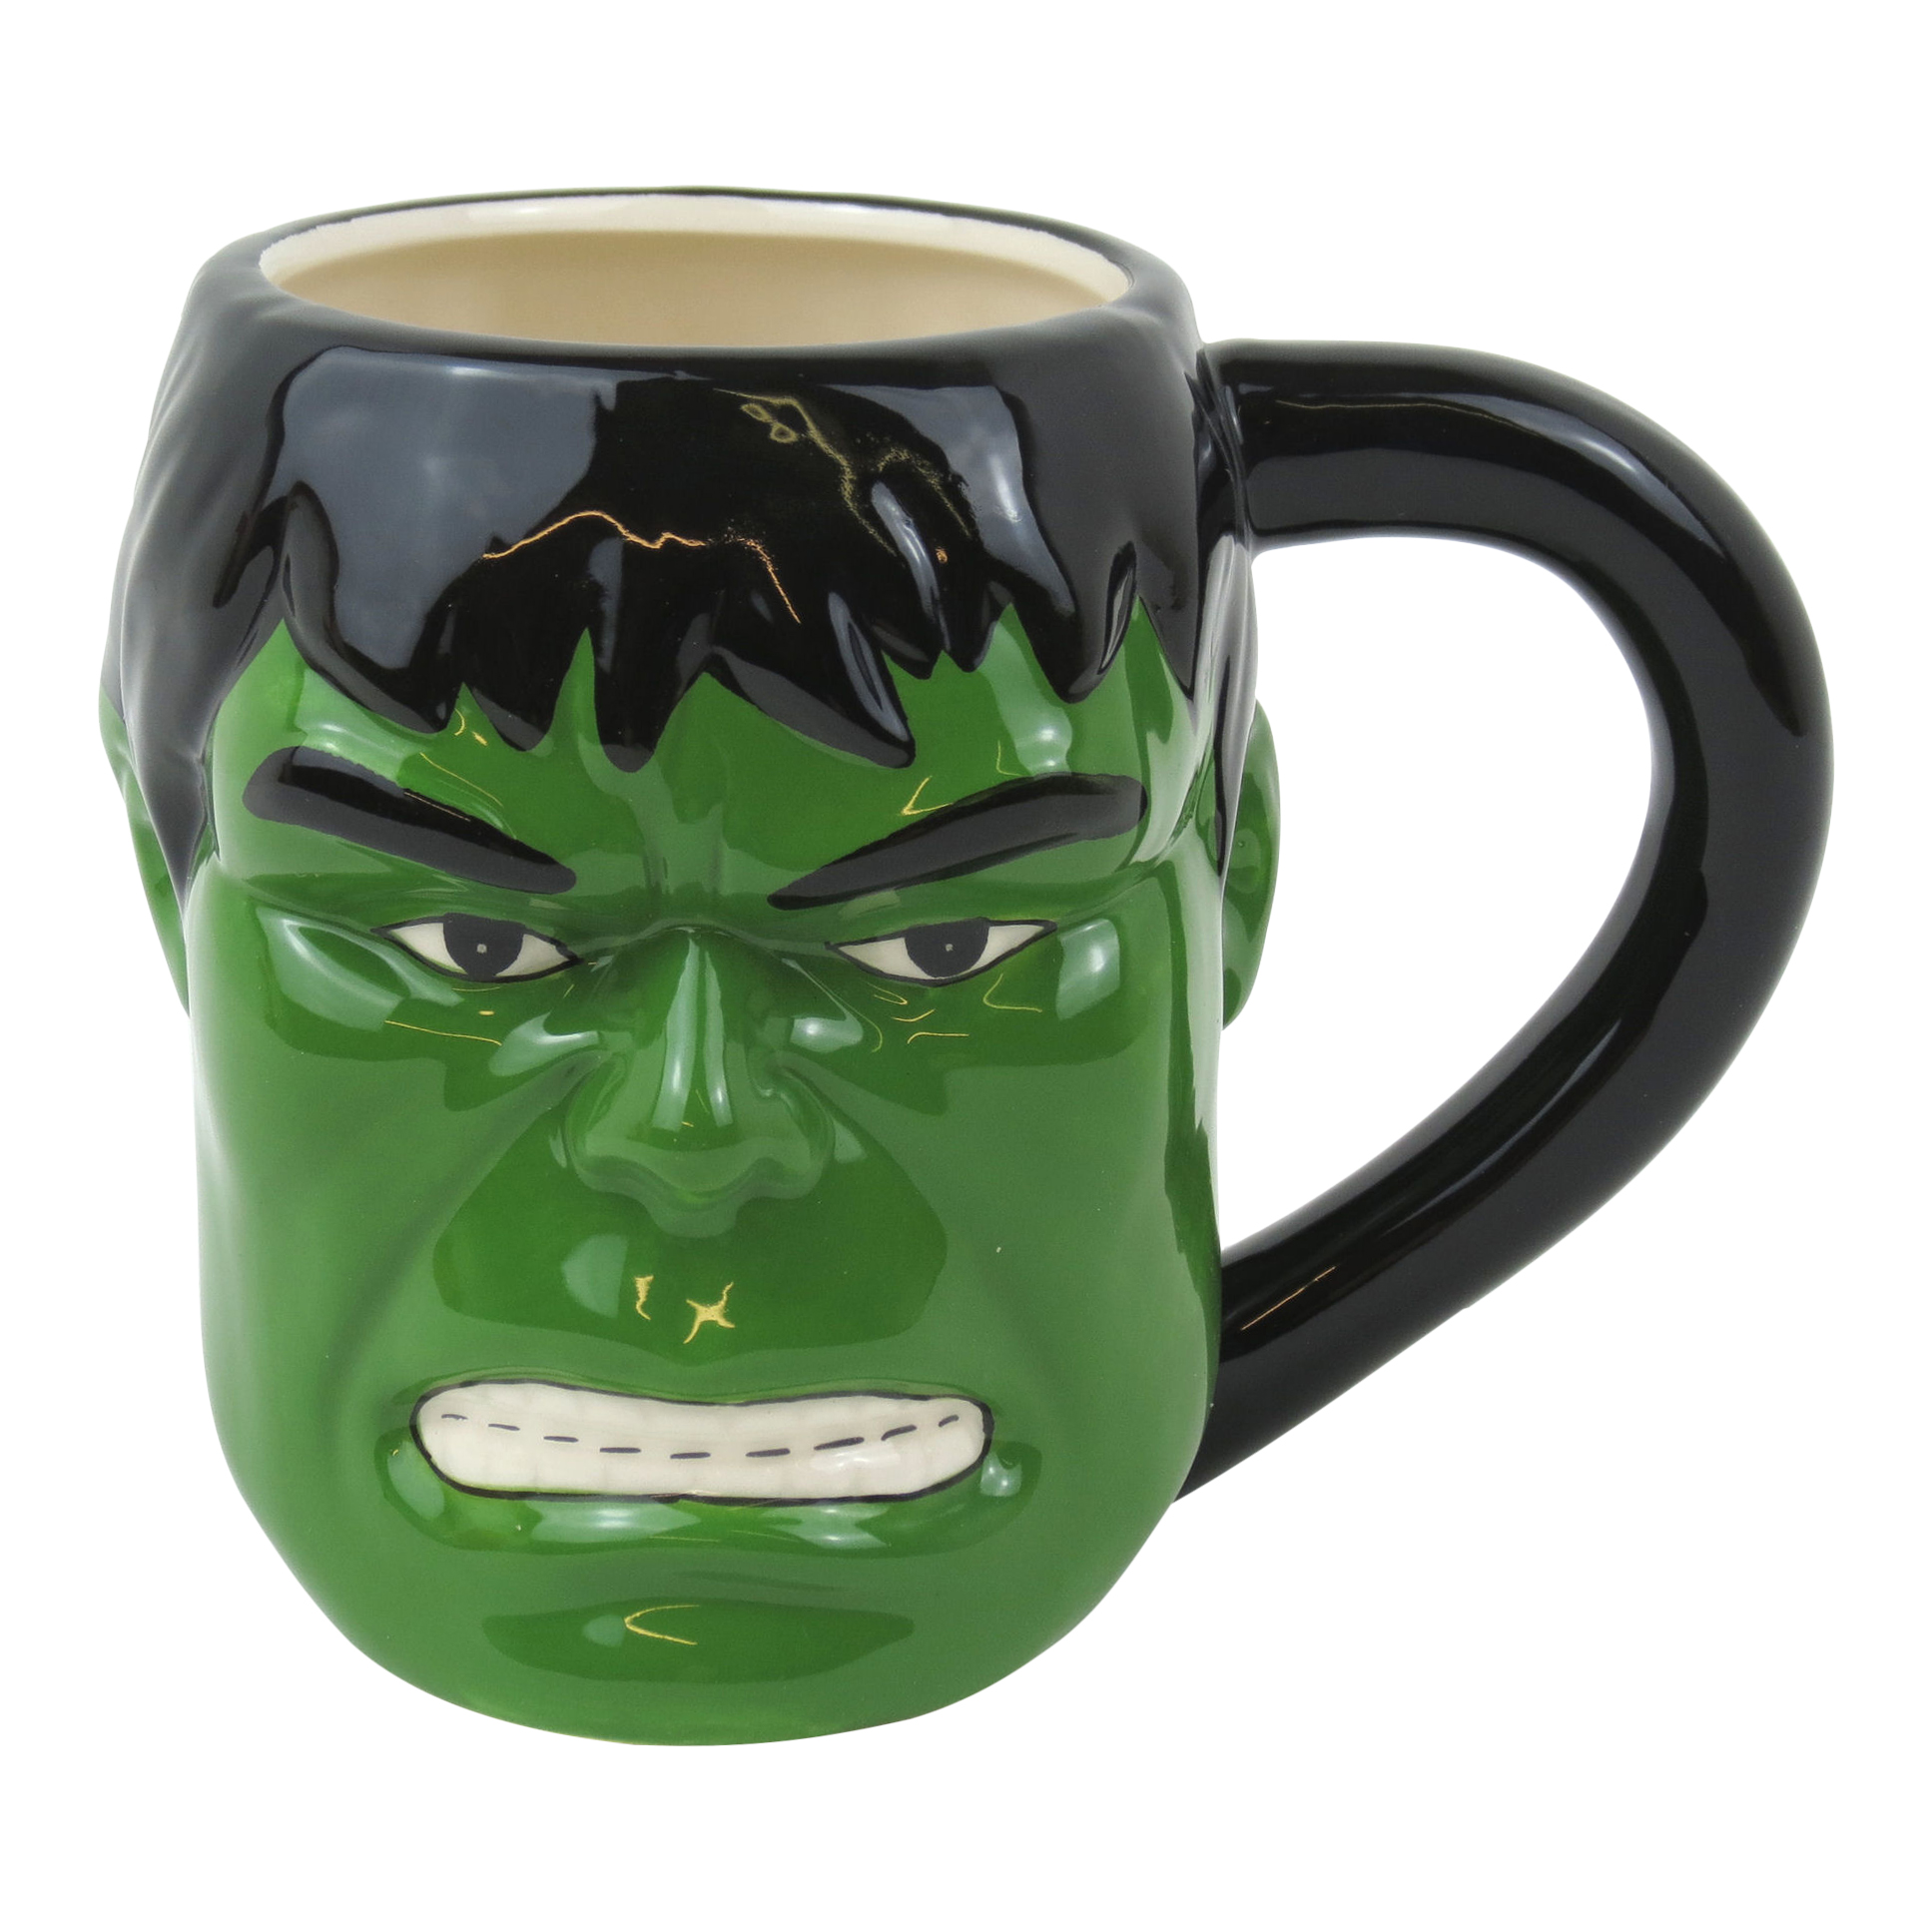 incredible hulk 3d shaped mug ceramic coffee tea cup